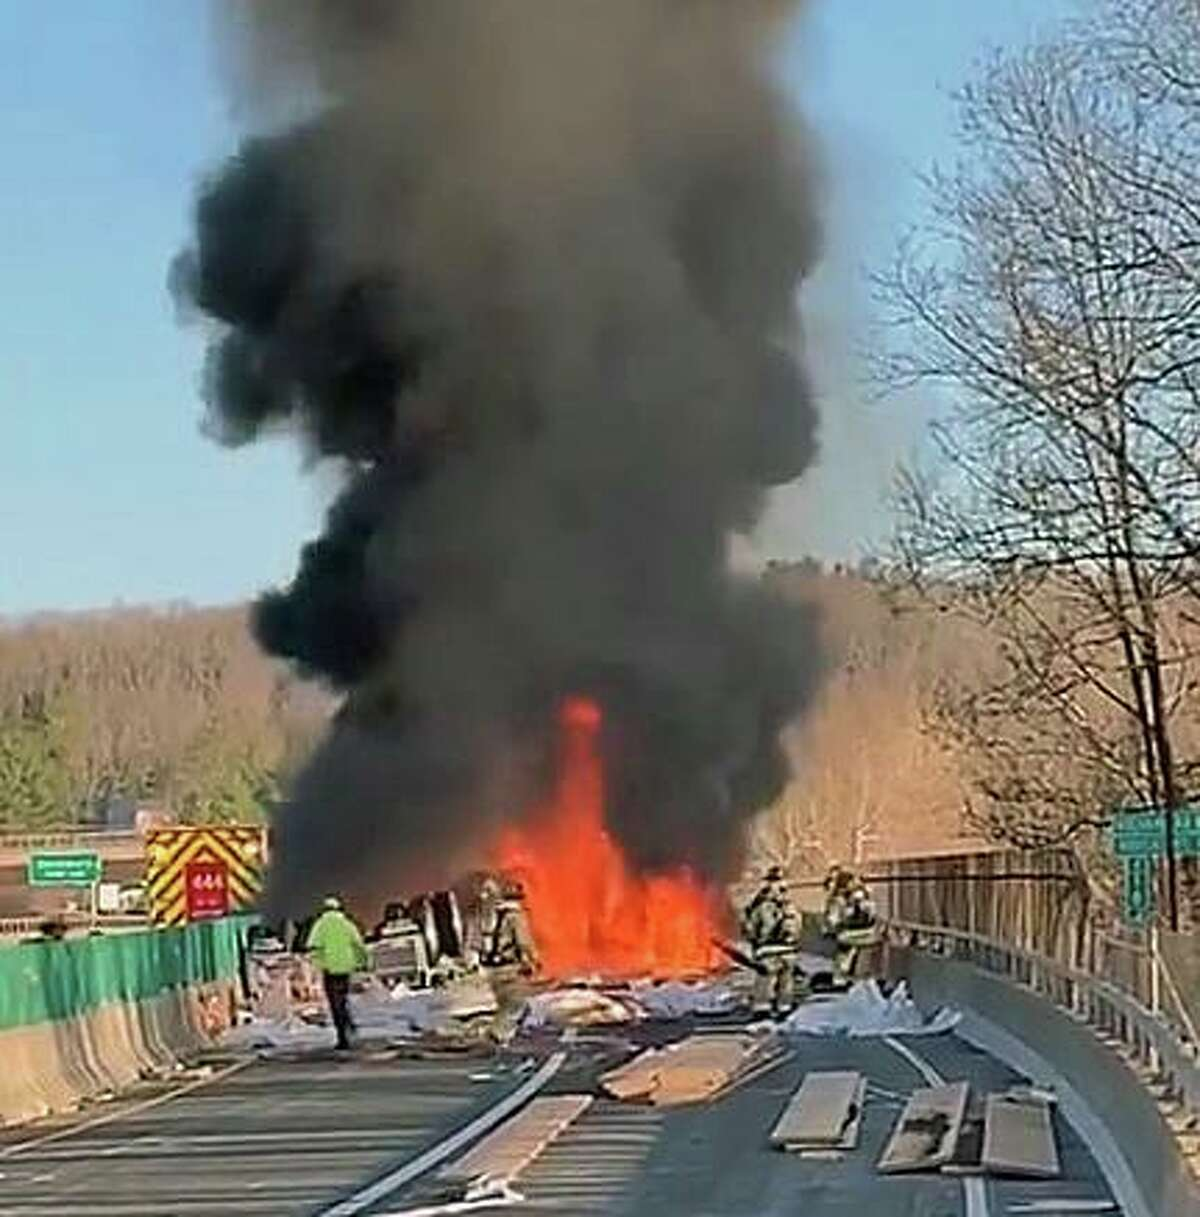 Crews on scene for an overturned tractor-trailer on fire on the Rocheambeau Bridge, which is under construction, on Interstate 84 on the Newtown-Southbury line on Tuesday, March 30, 2021.